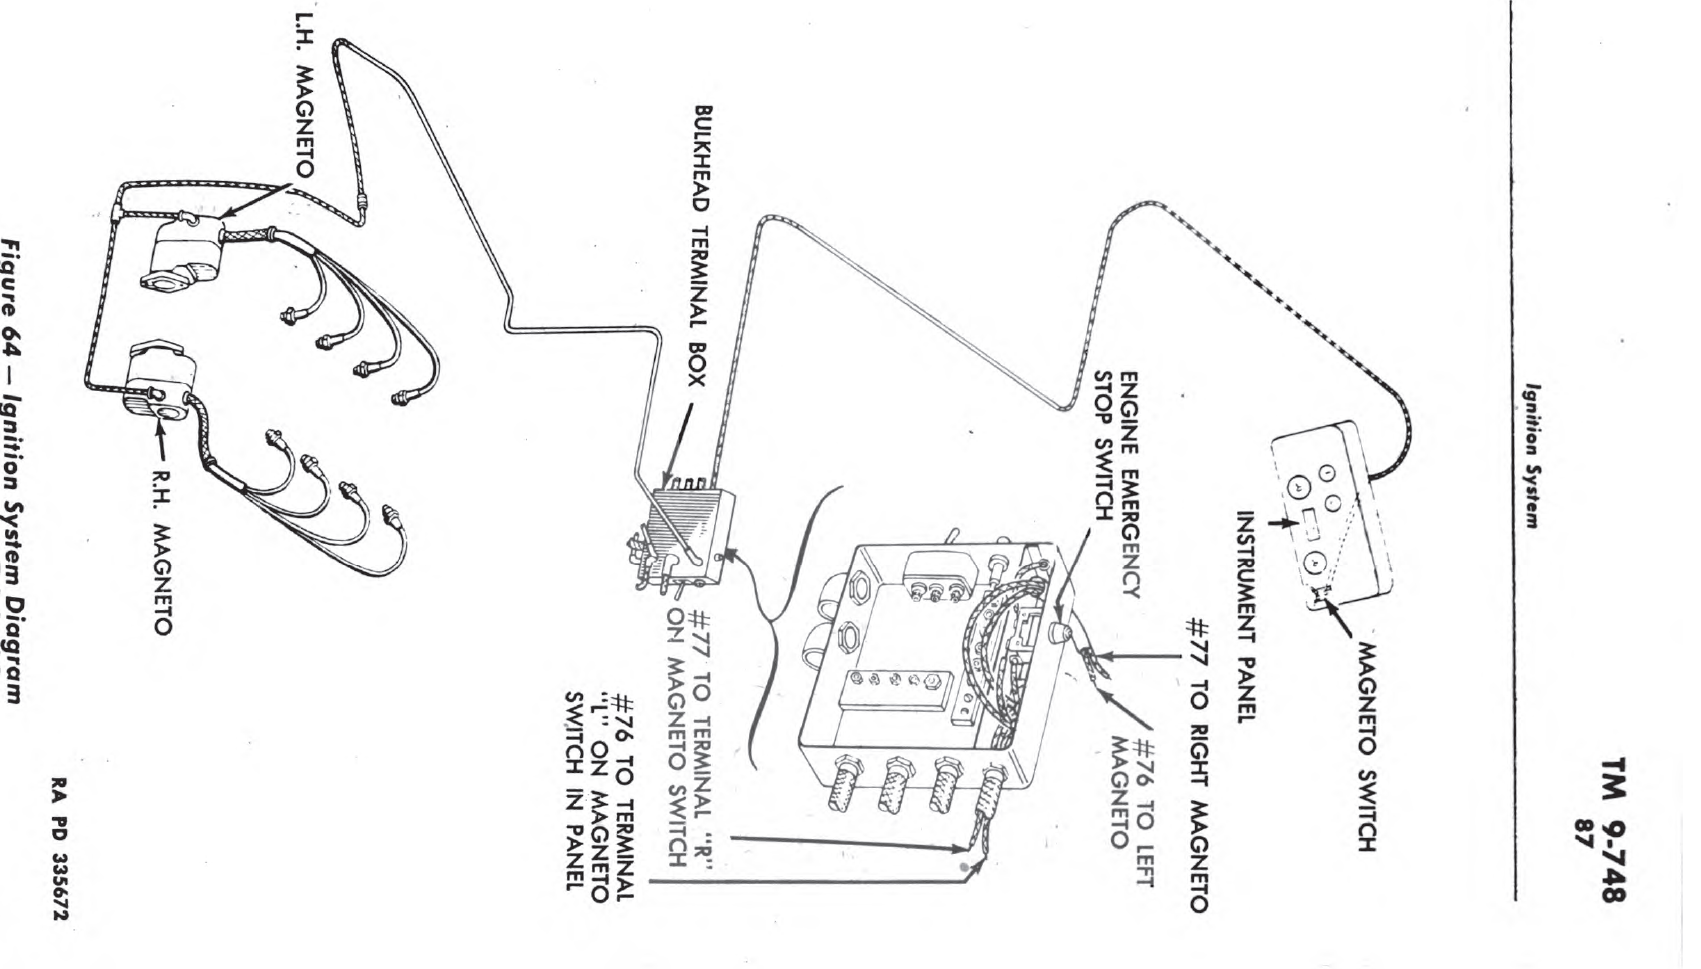 2014 ford boss plow dxt wiring diagram